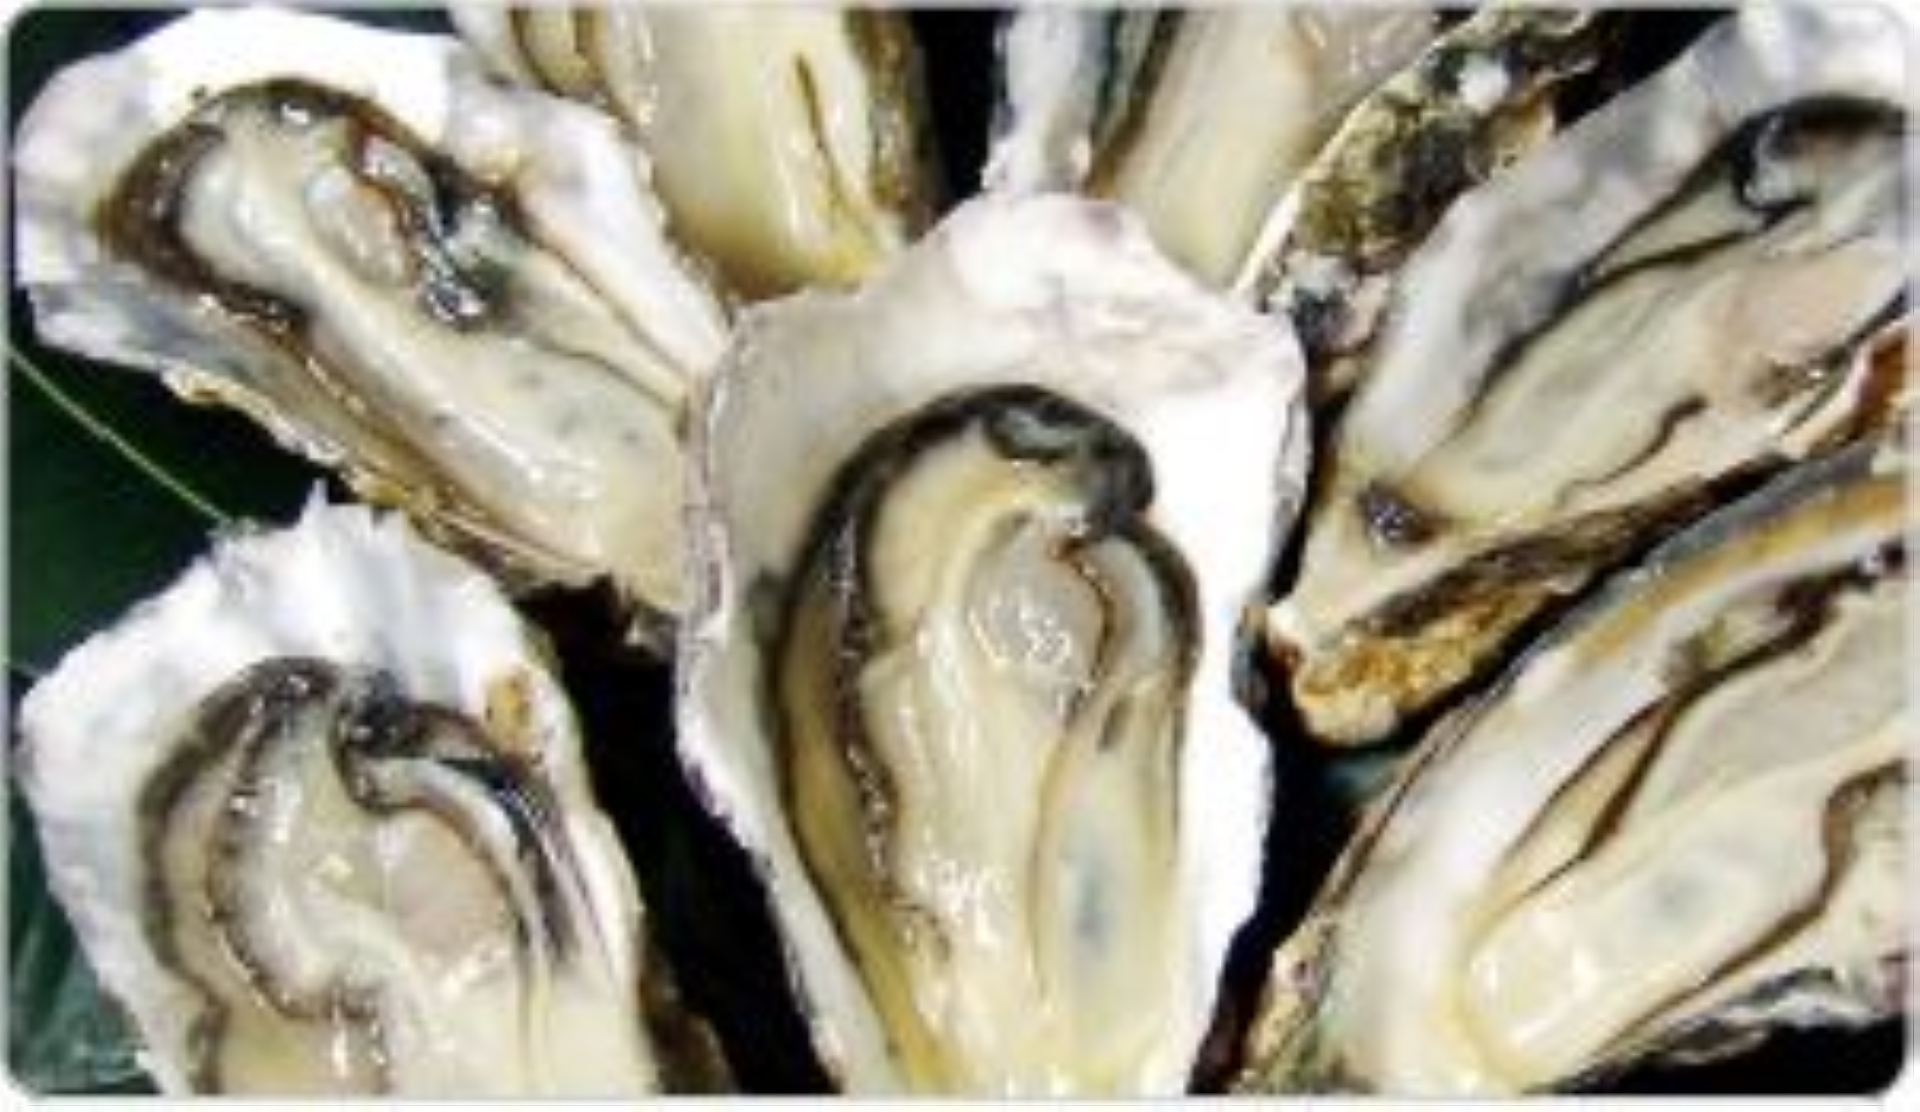 Quality oysters have firm and lustrous meat that looks bright and clear with a milky gloss.